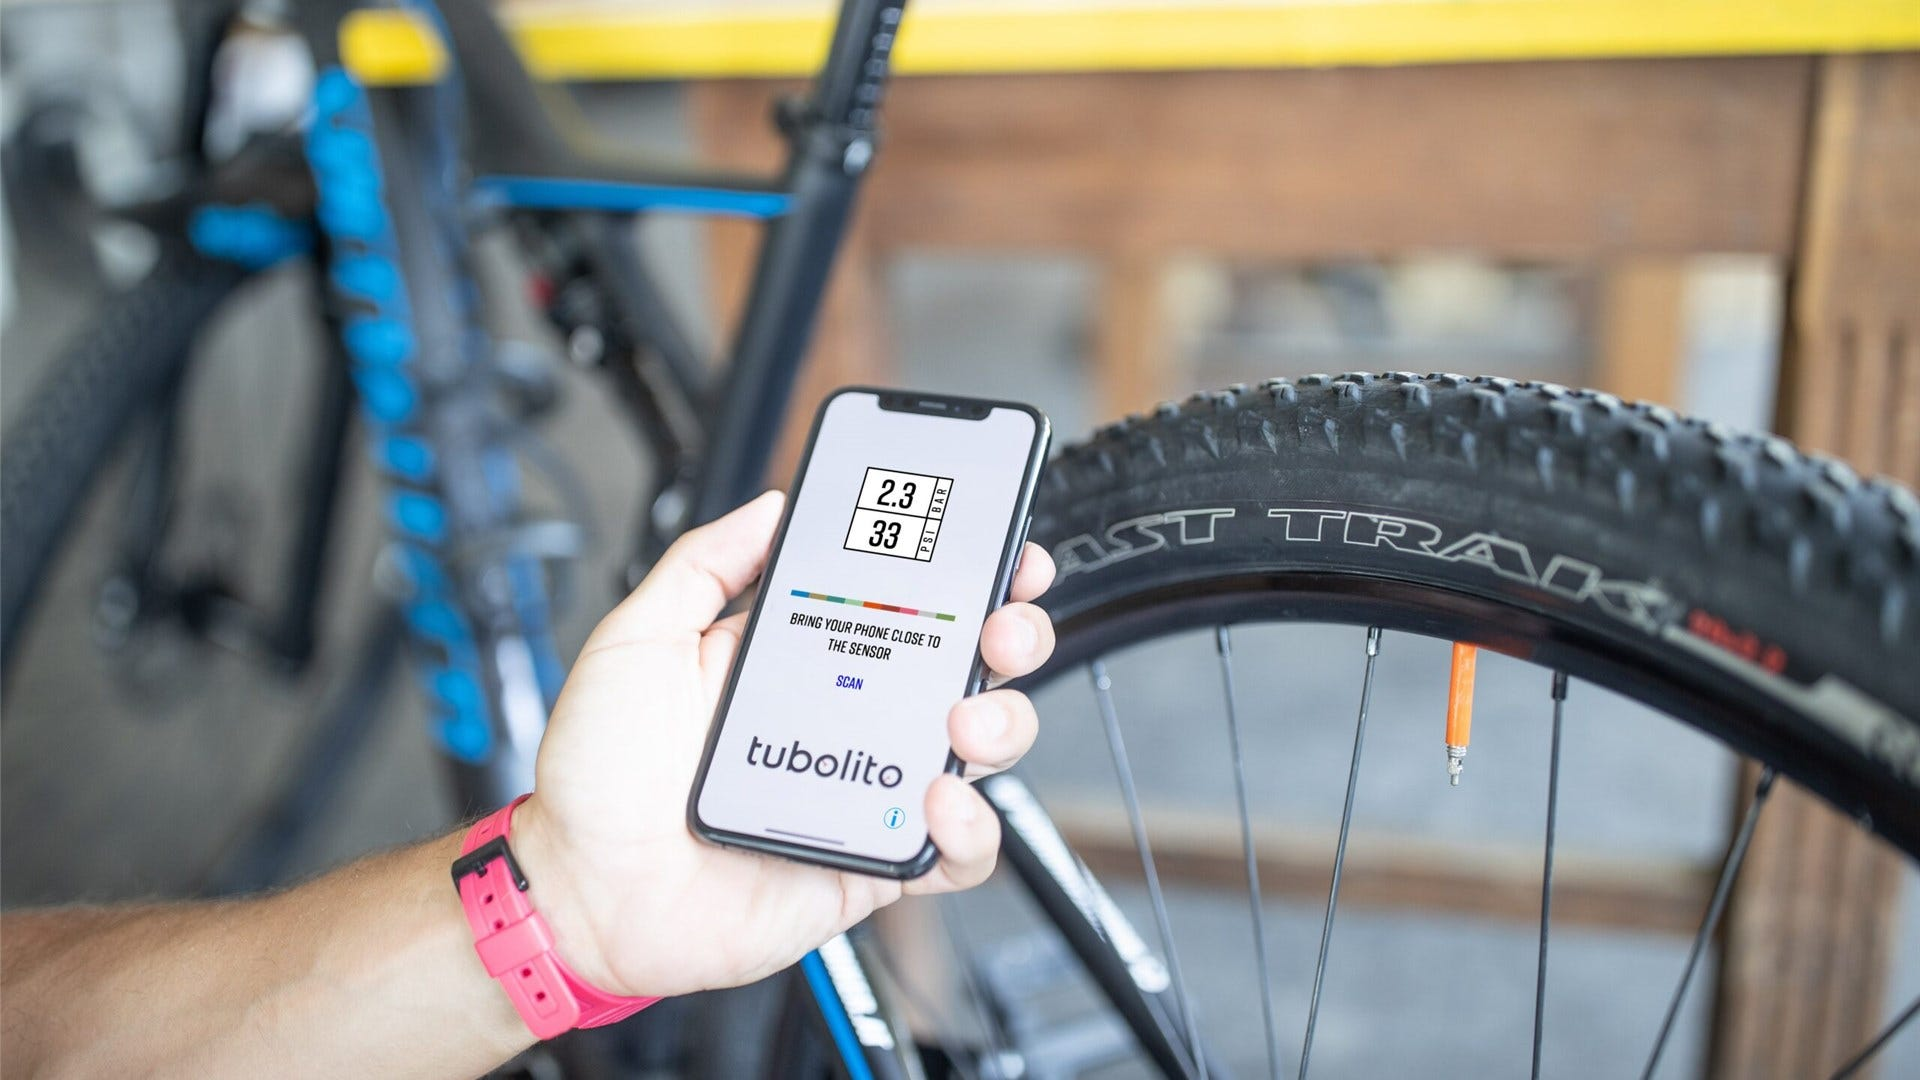 Checking tire pressure on your smart phone.